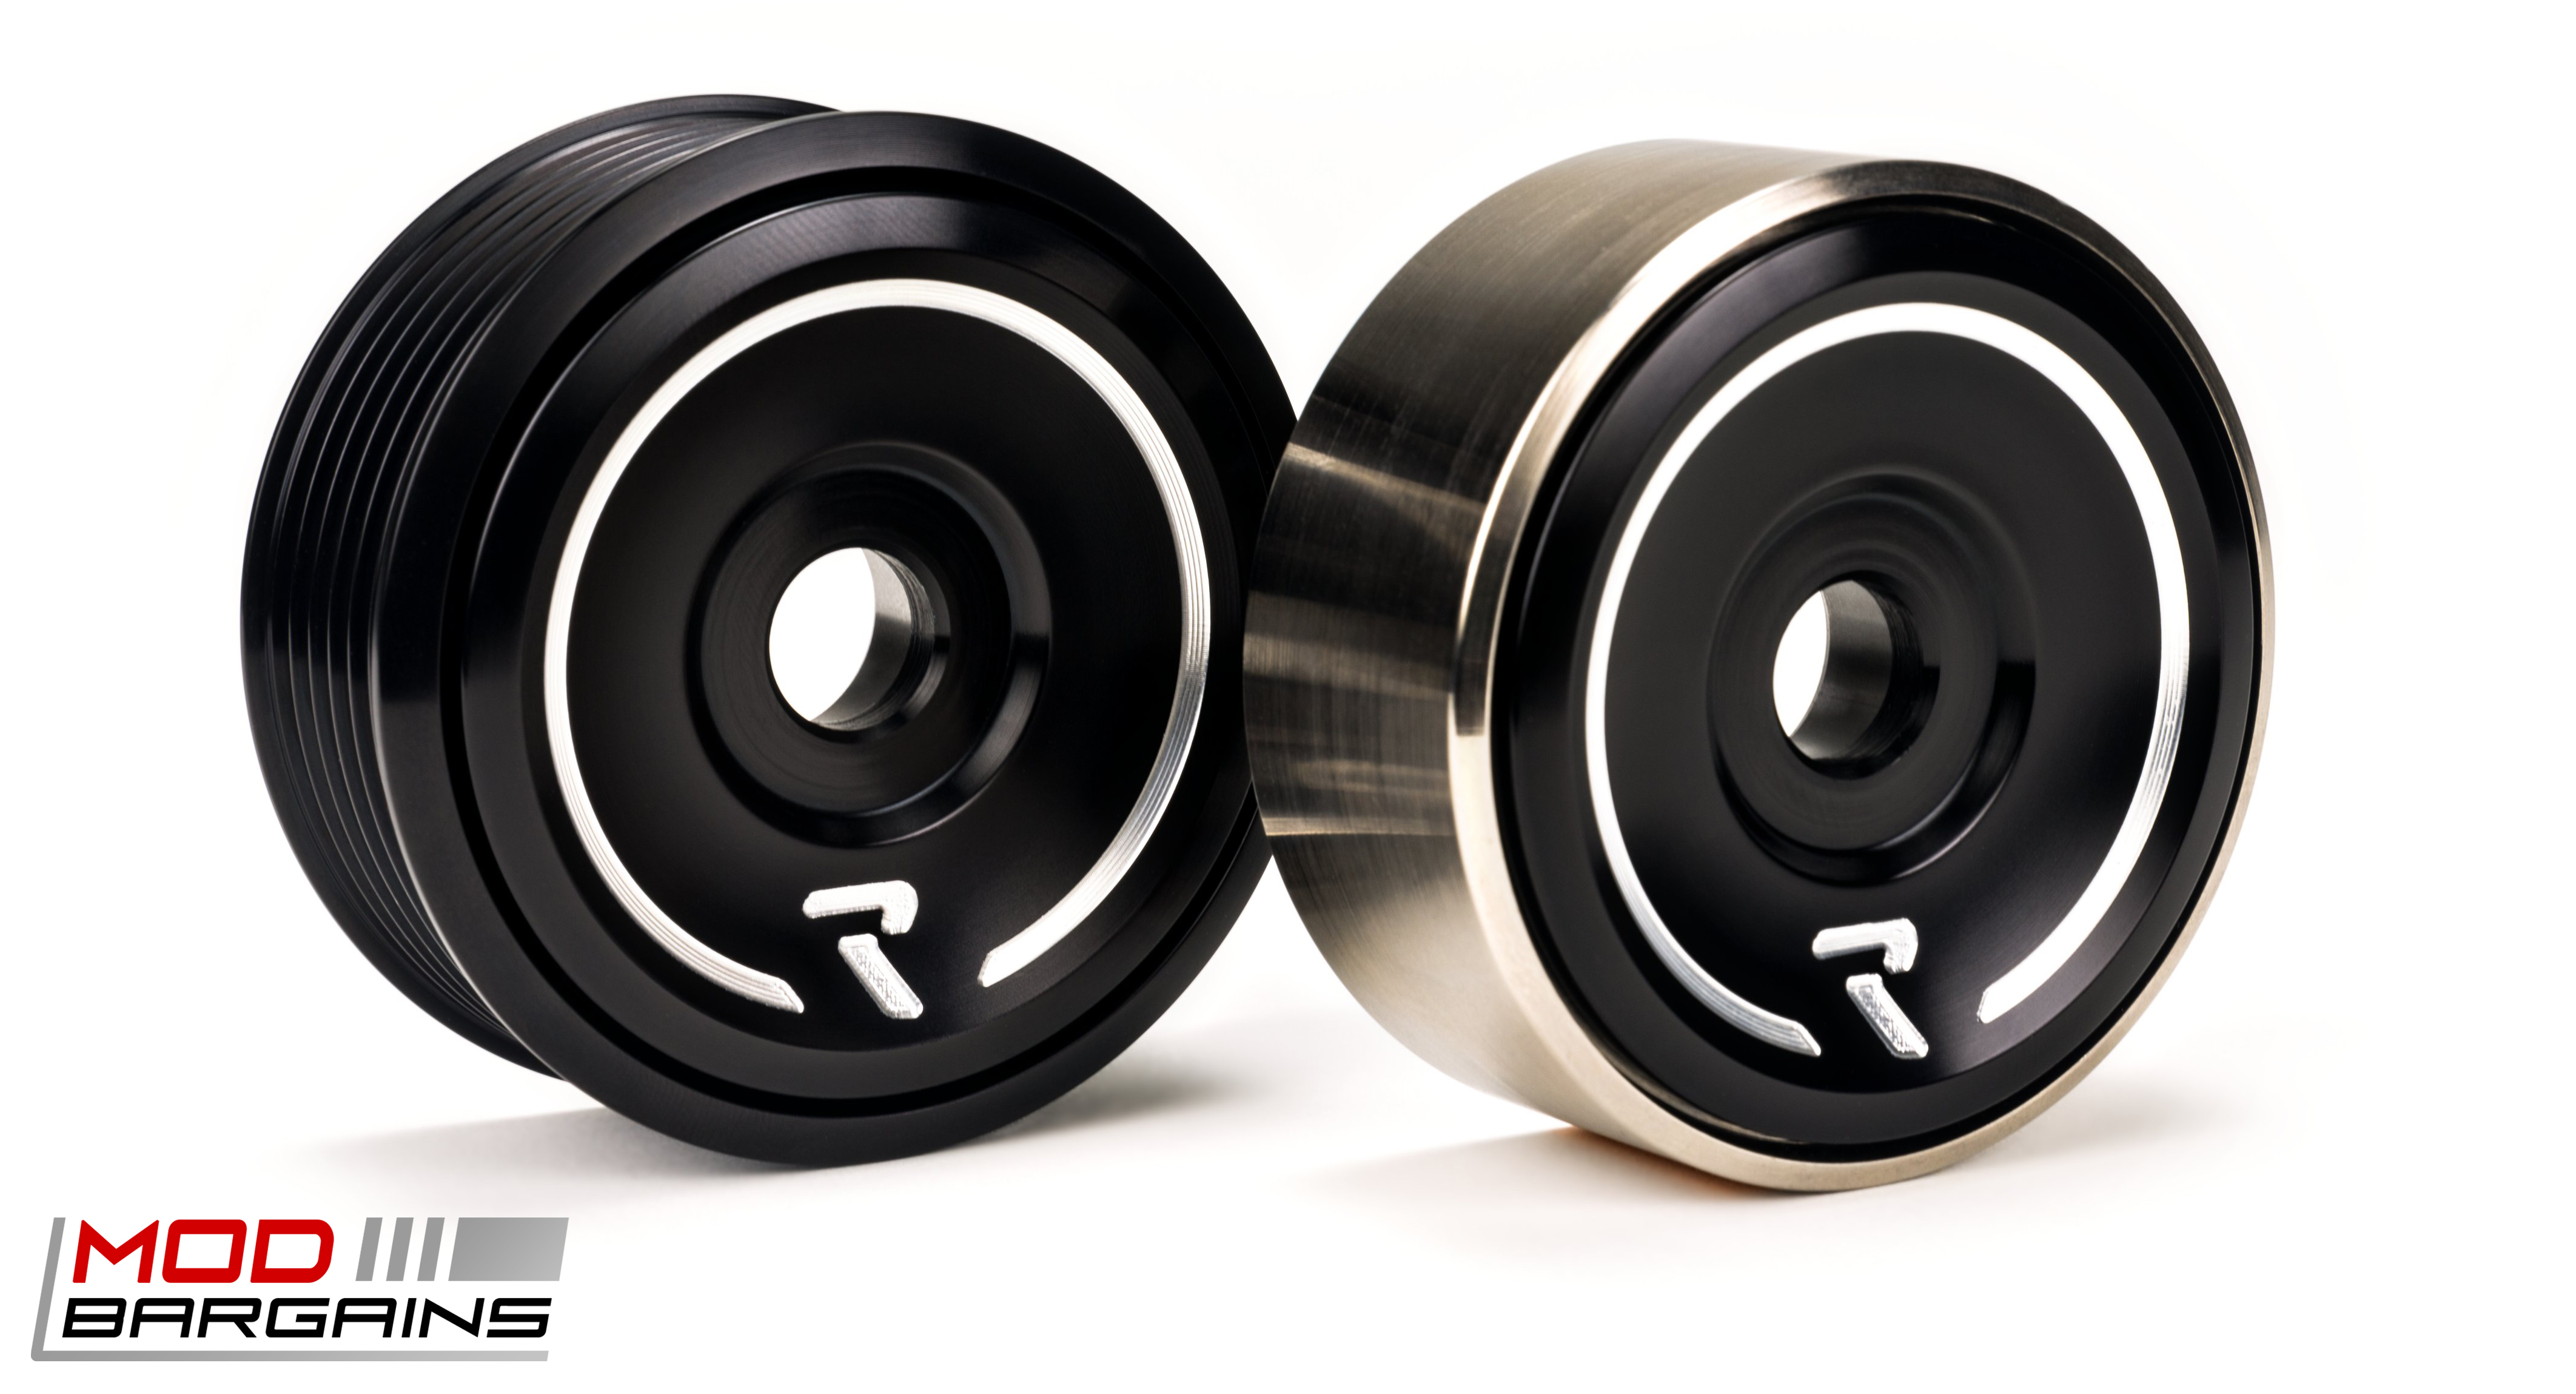 Raceseng Revo Tensioners in Black for 2013+ Scion FRS/Subaru BRZ